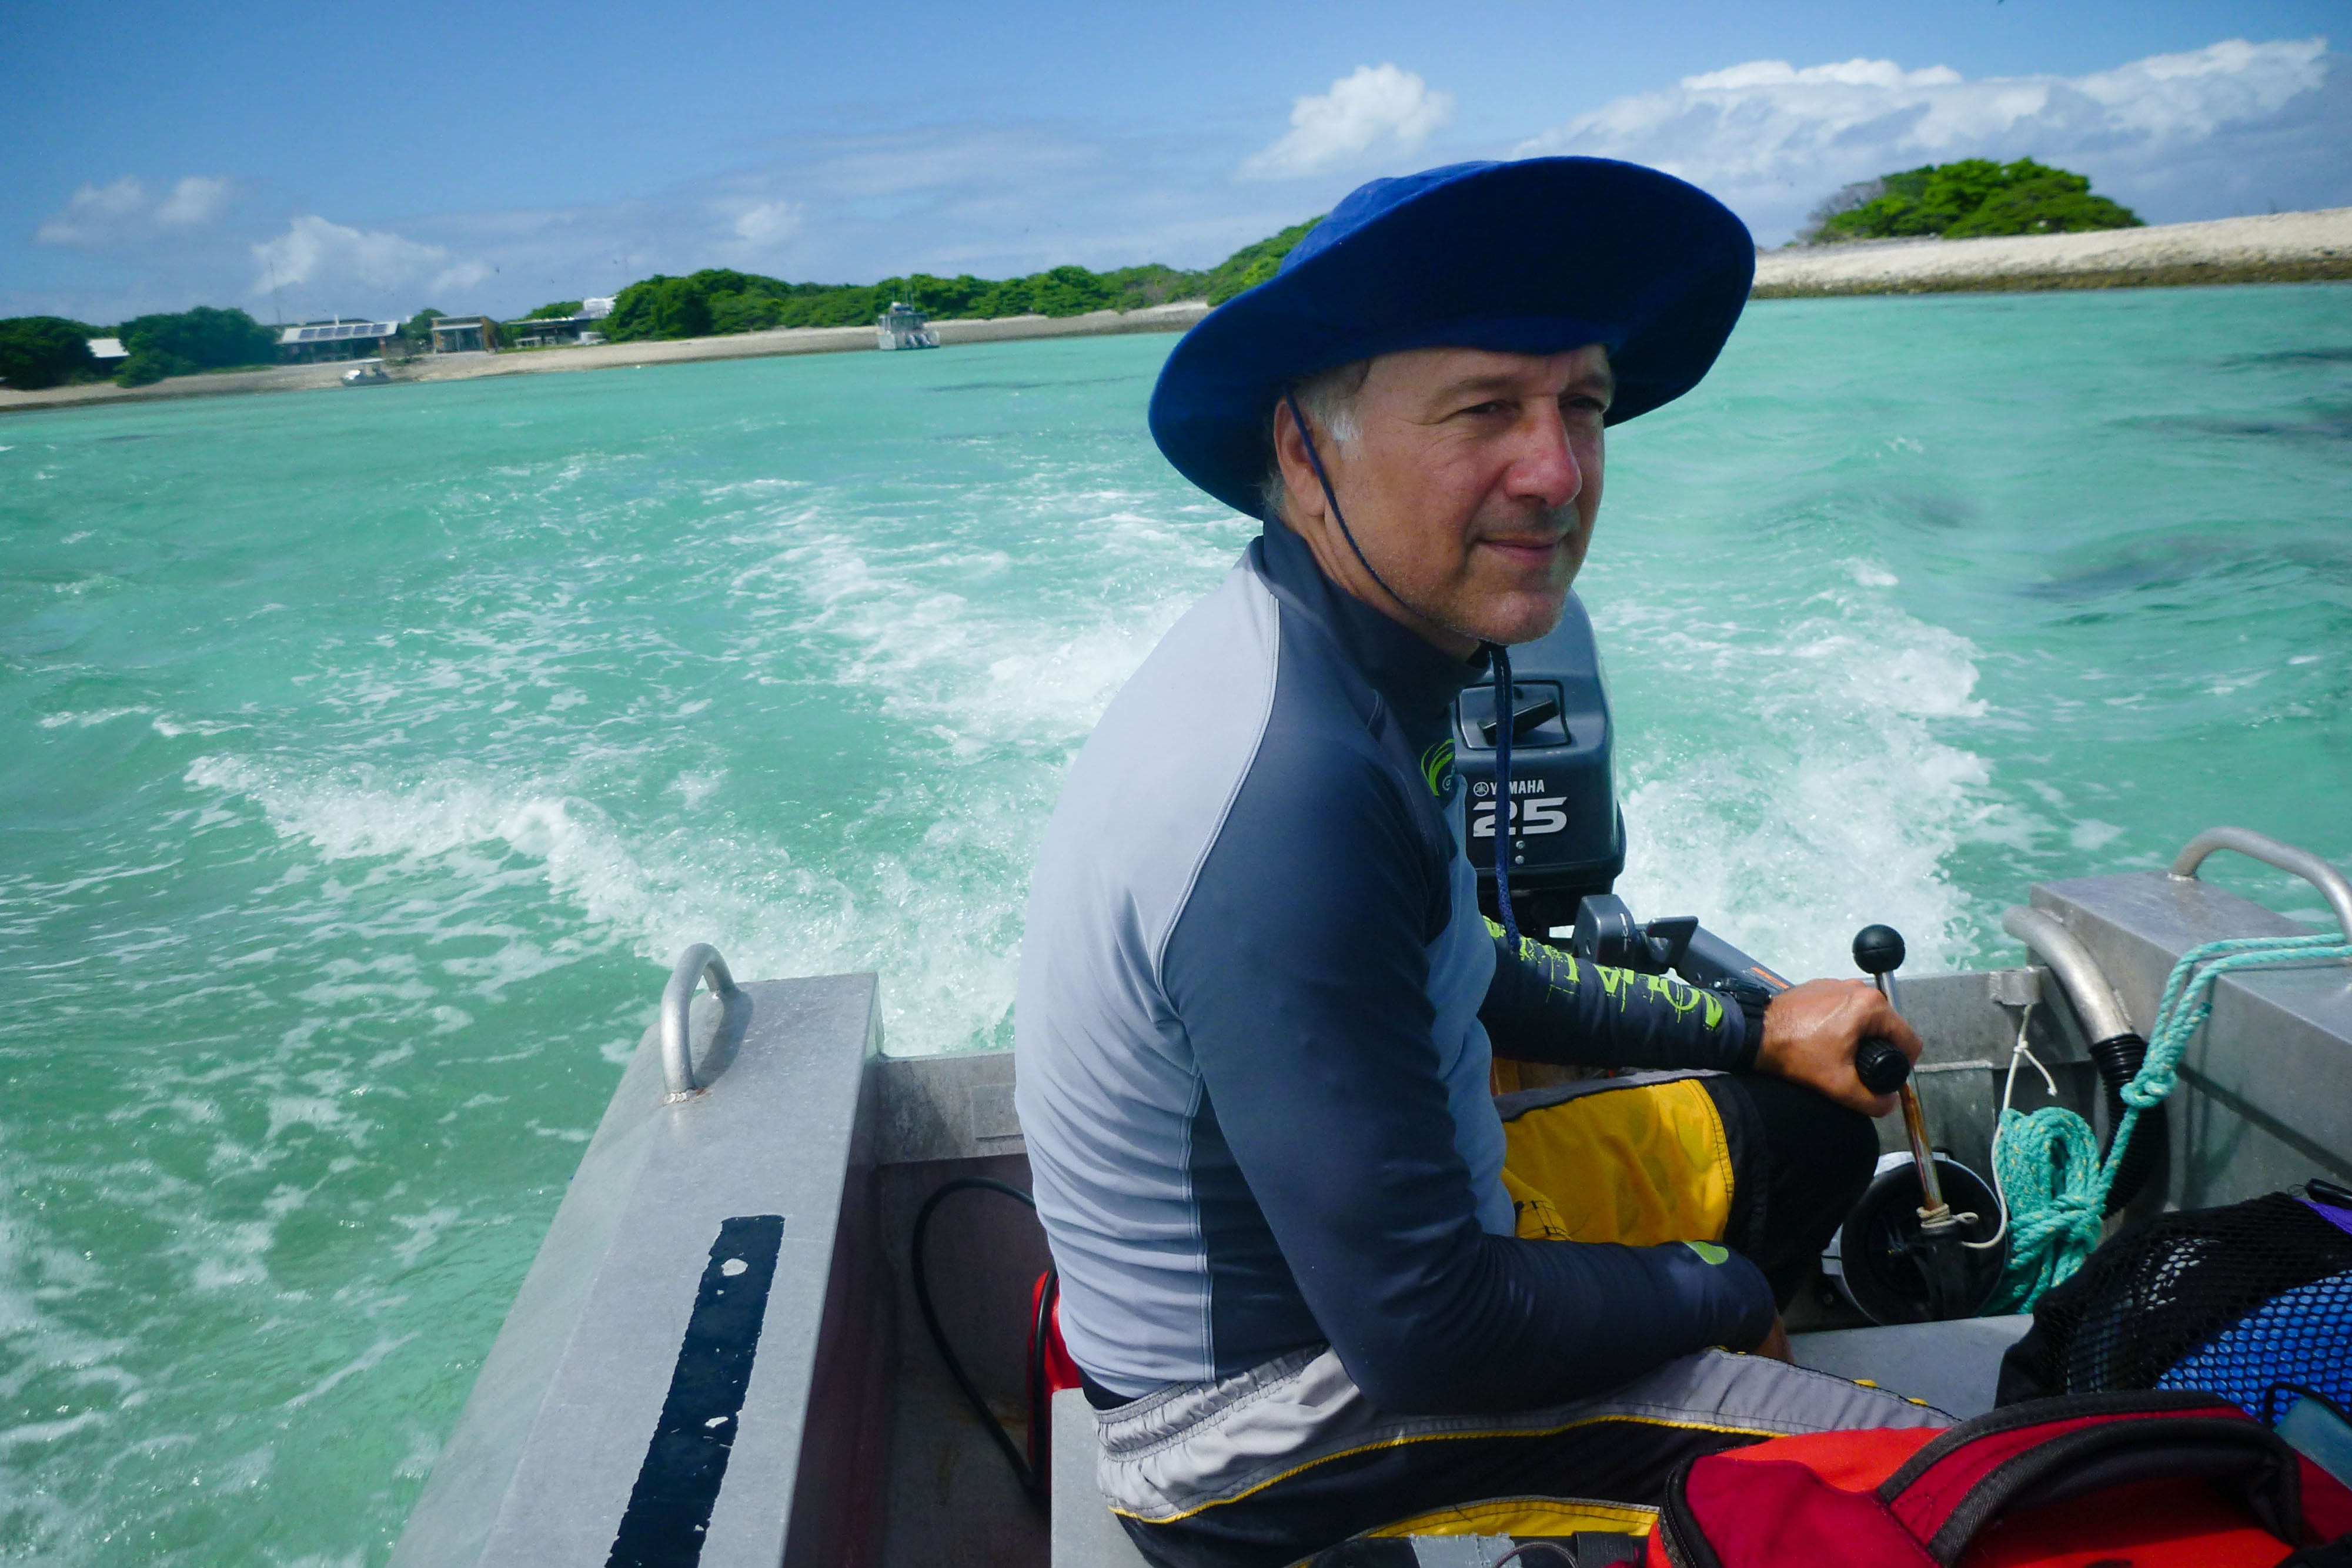 Ken Caldeira, a researcher with the Carnegie Institution for Science, pilots an aluminum skiff filled with equipment for his experiment on the reef. He is trying to figure out whether corals would grow faster if he neutralized human-induced changes in the ocean's acid balance.